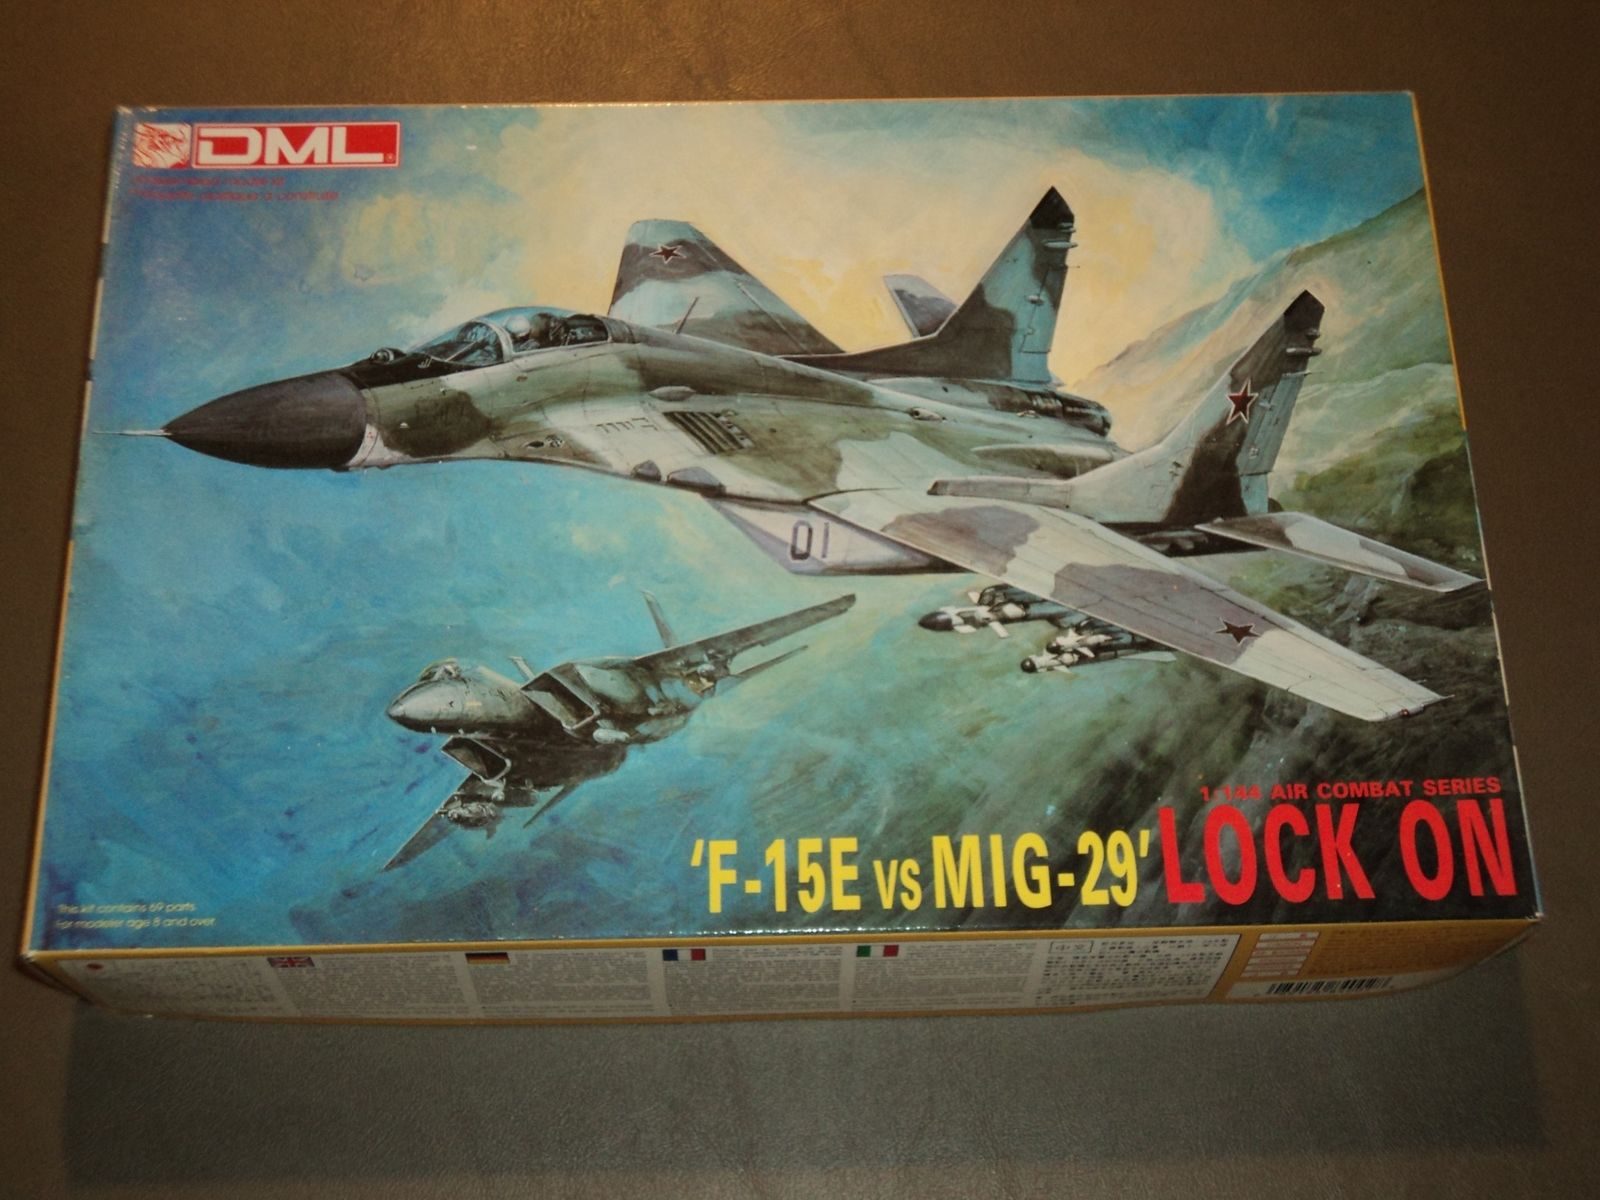 F-15E vs Mig-29 Lock On